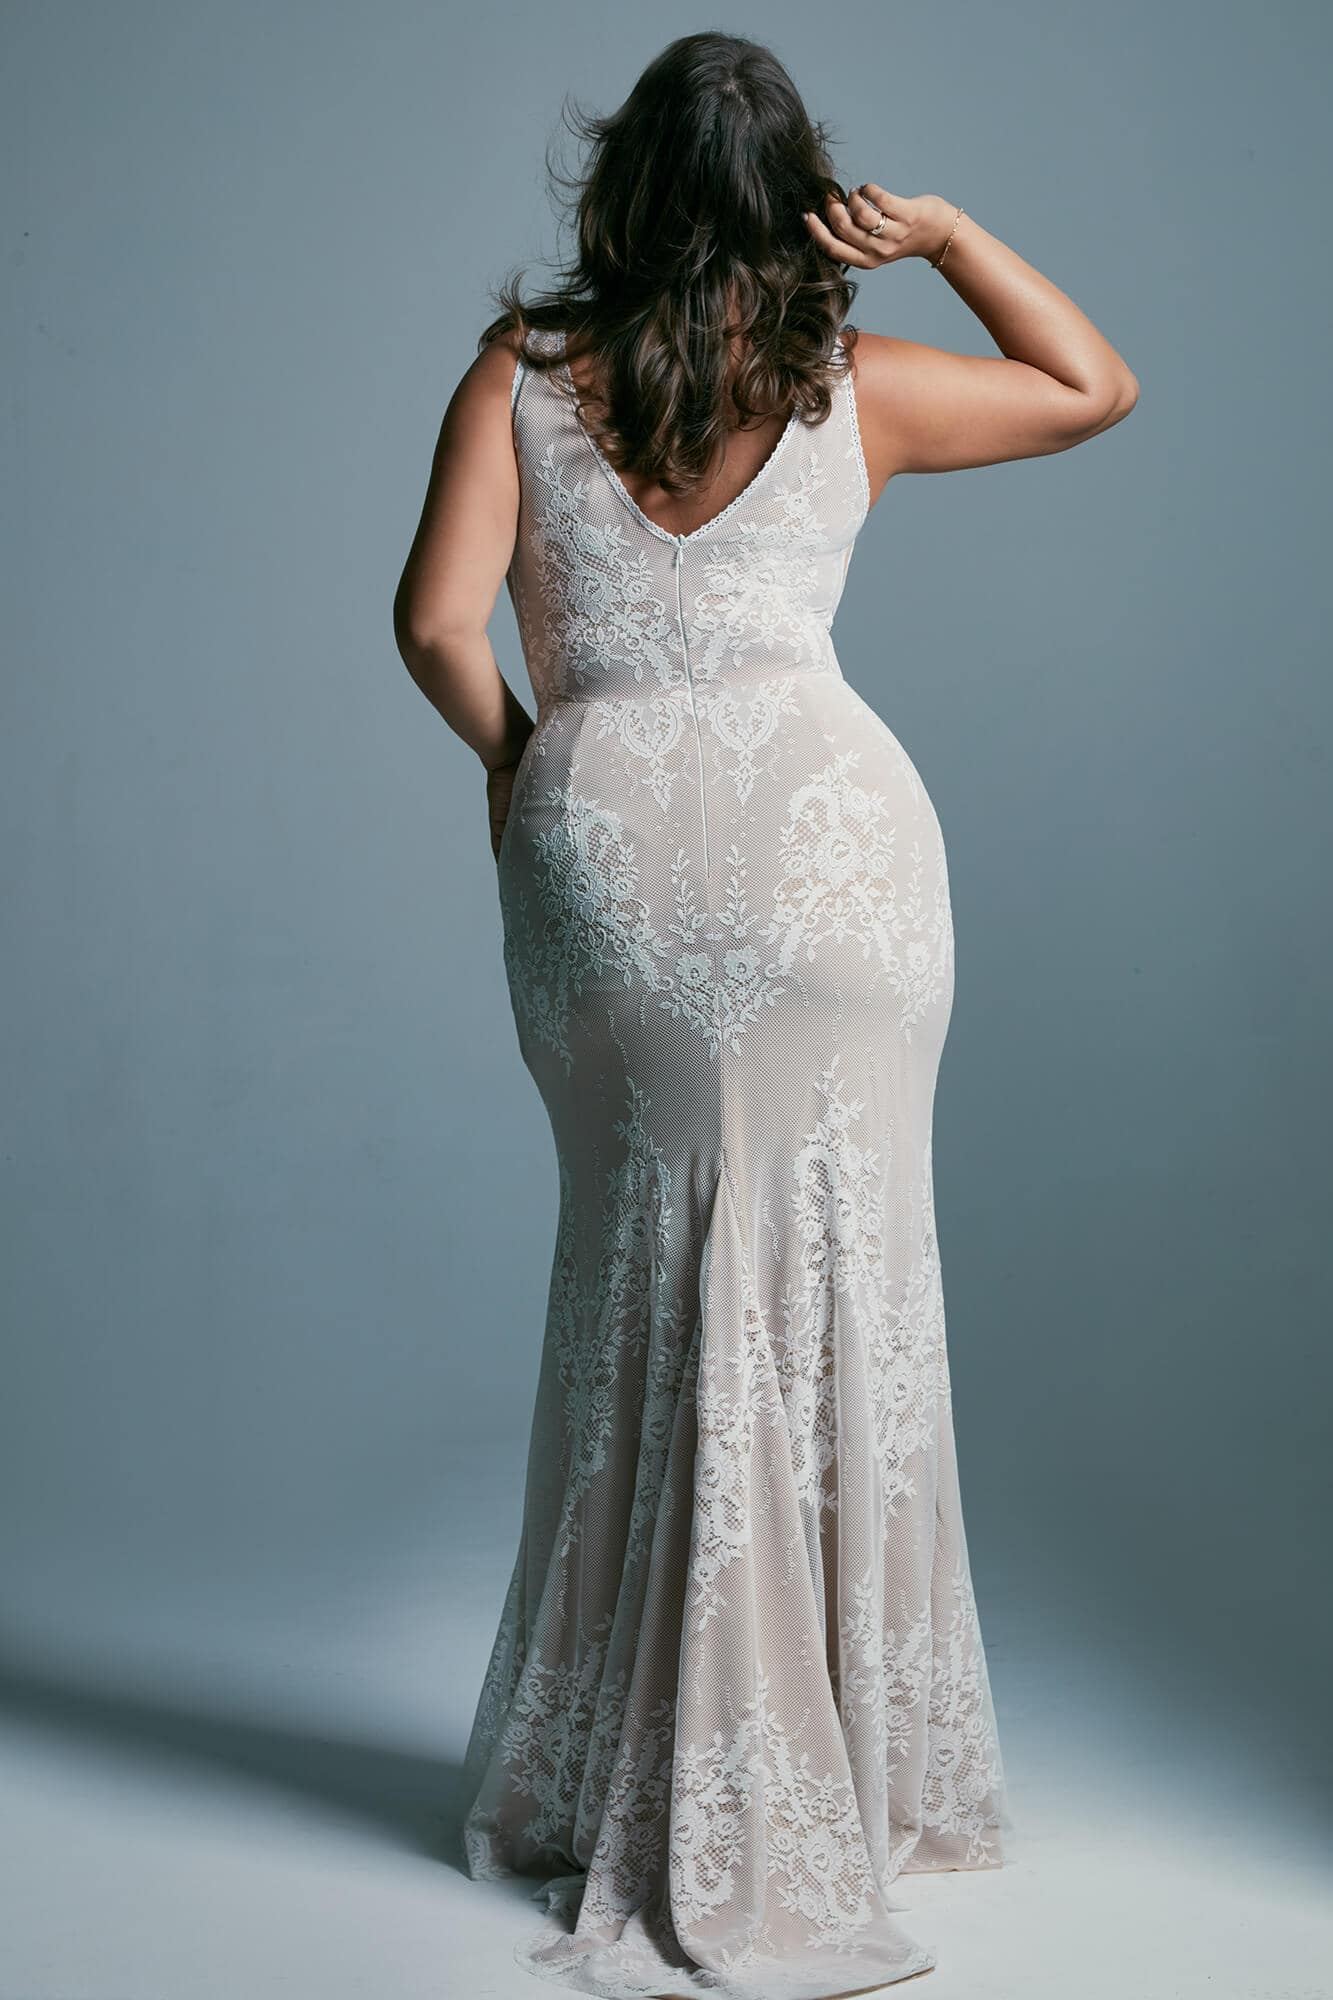 Sexy plus size wedding dress with a mermaid cut close to the body Porto 42 plus size